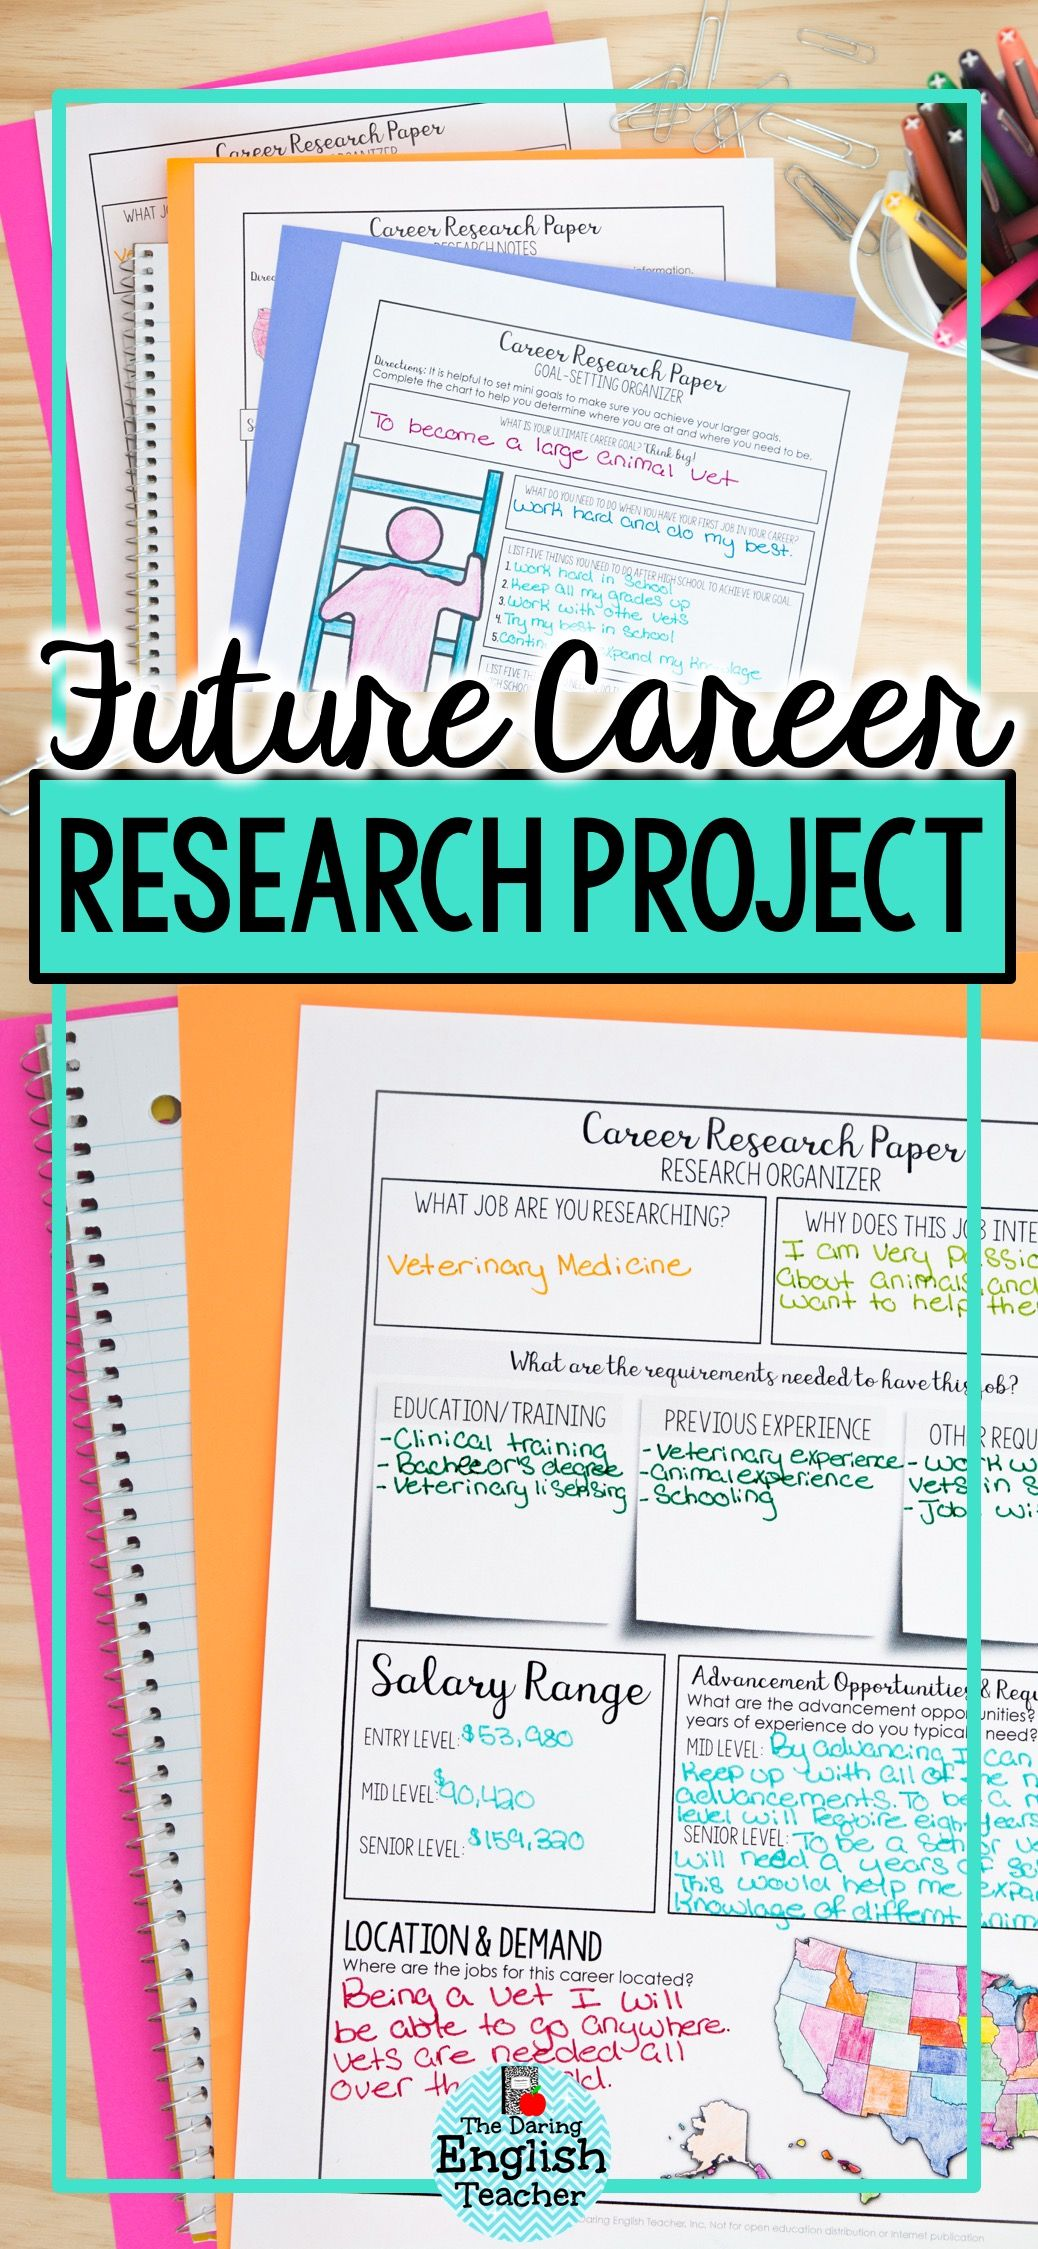 005 Career Research Paper Wondrous Rubric Full